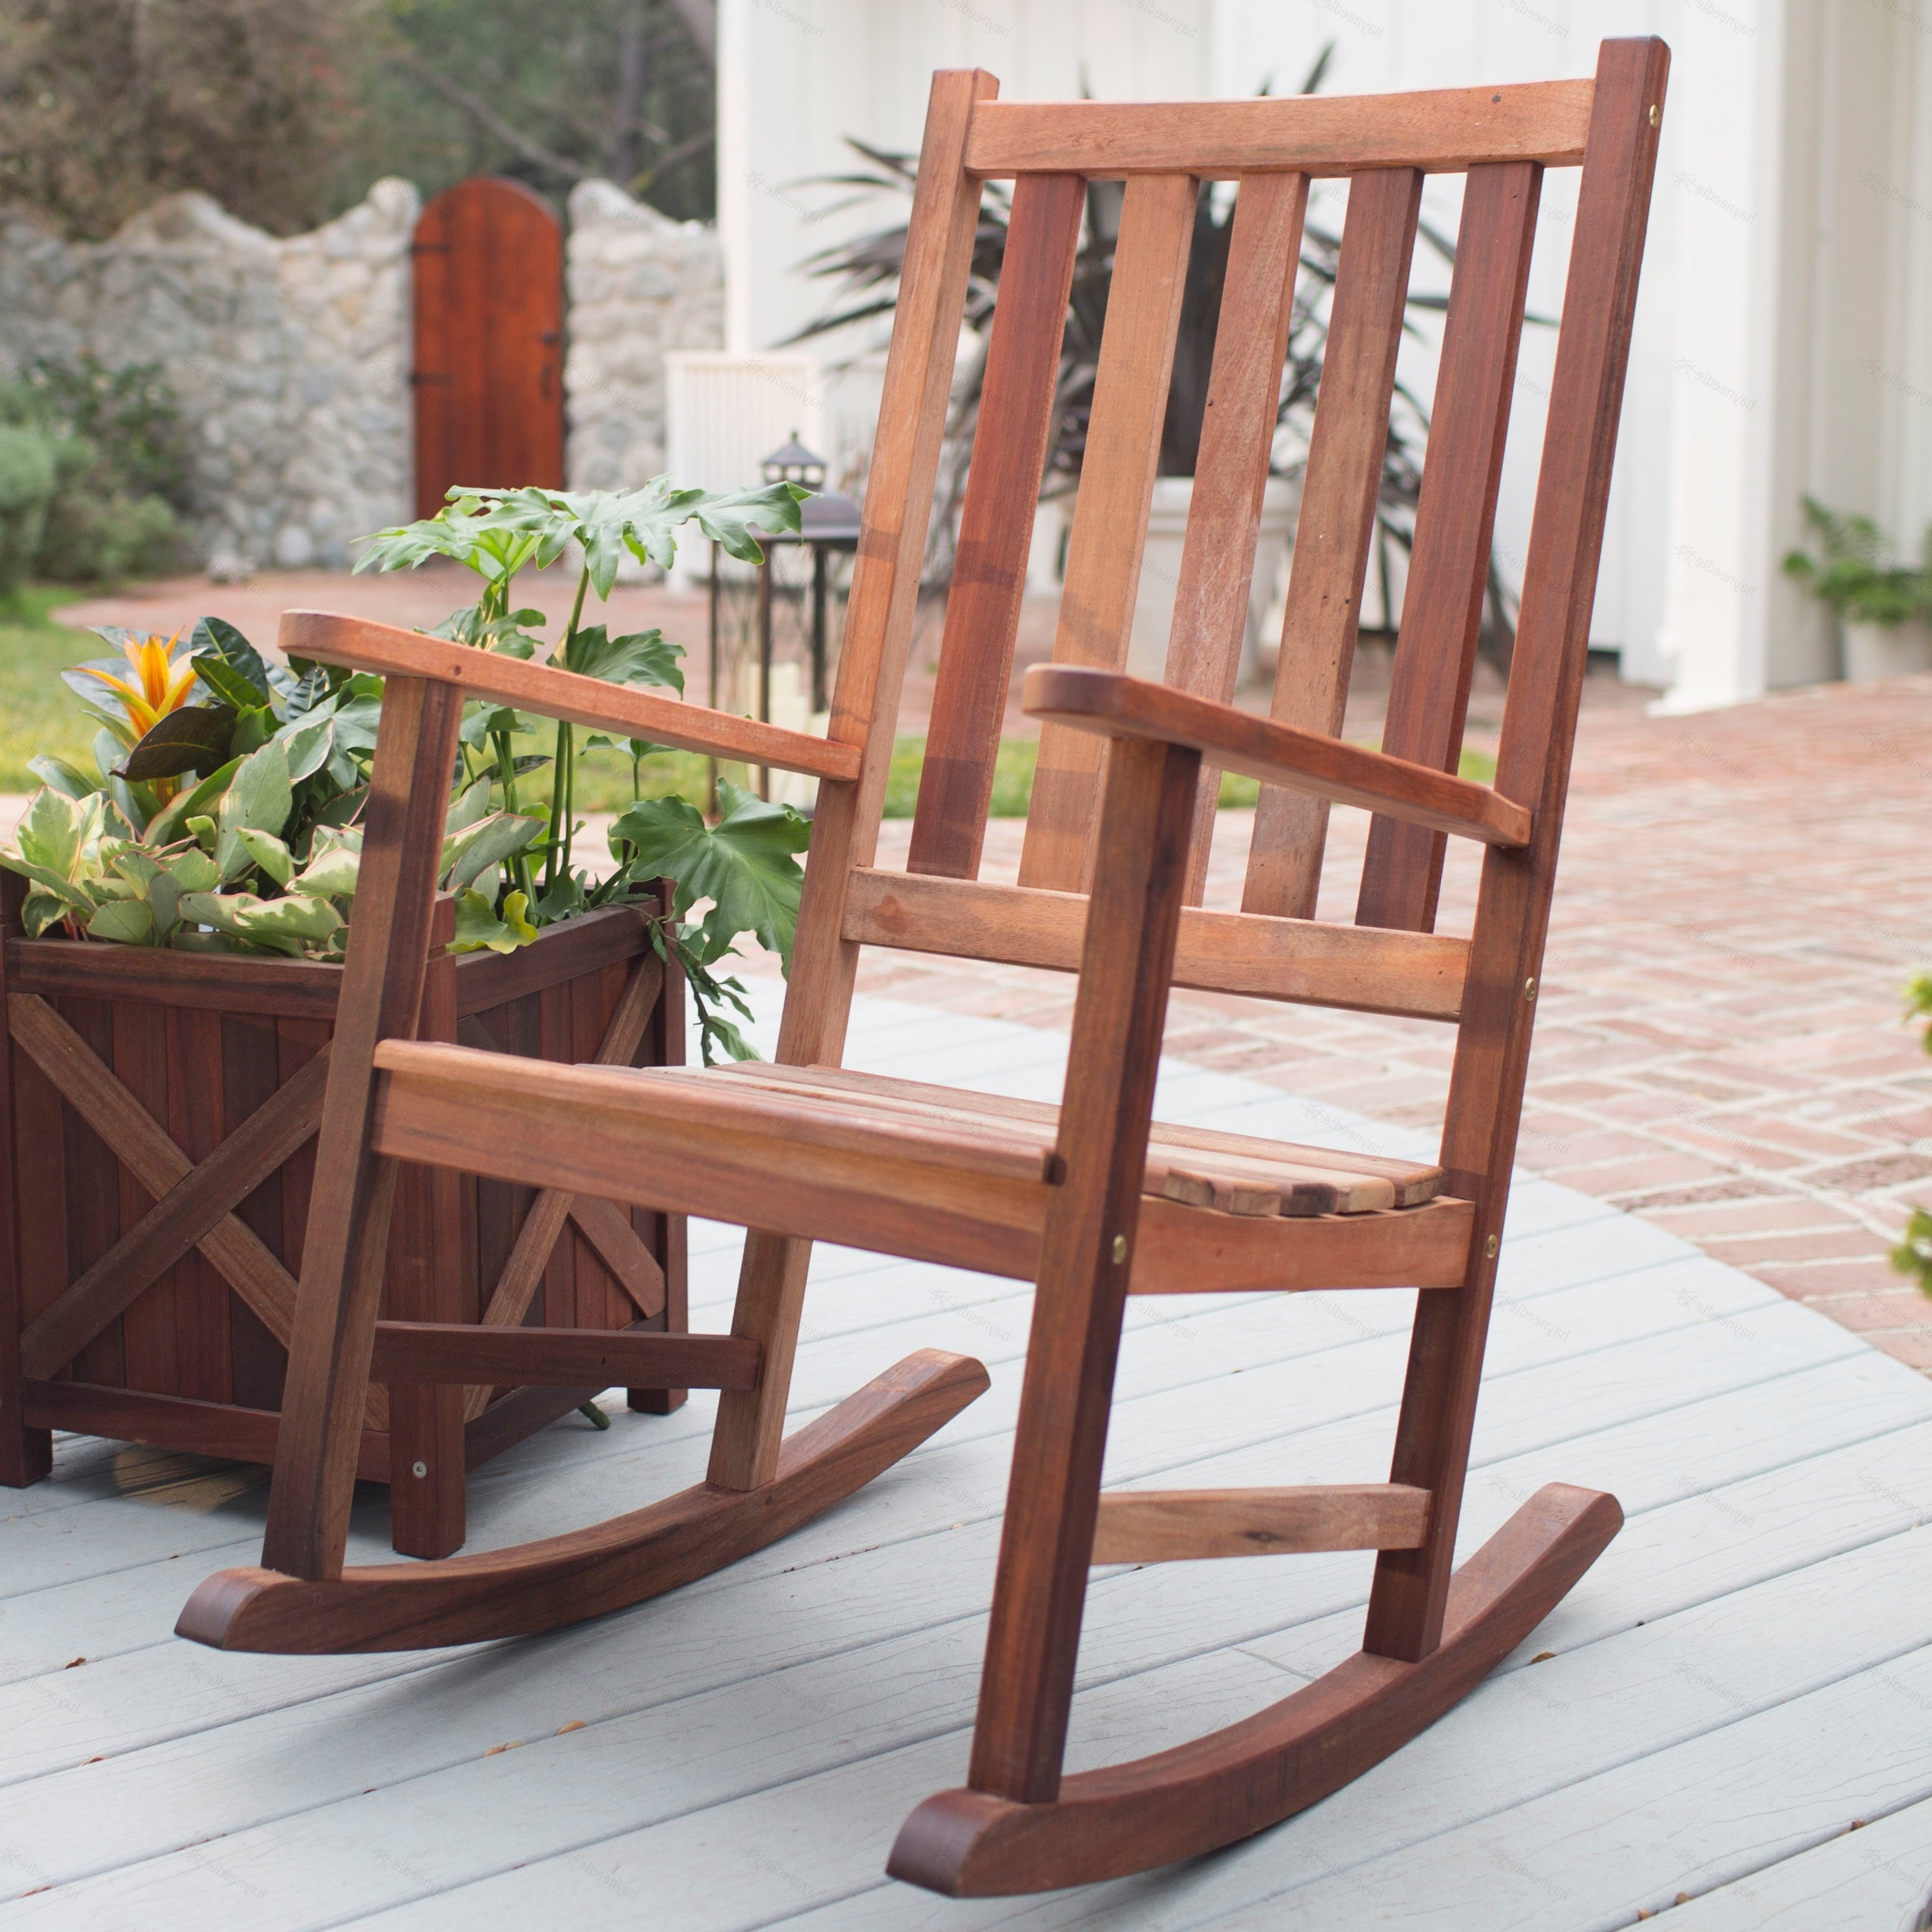 Well Known Outdoor Vinyl Rocking Chairs In Patio & Garden : Rocking Chairs For Outdoors Amazing Amazon Merry (View 5 of 20)